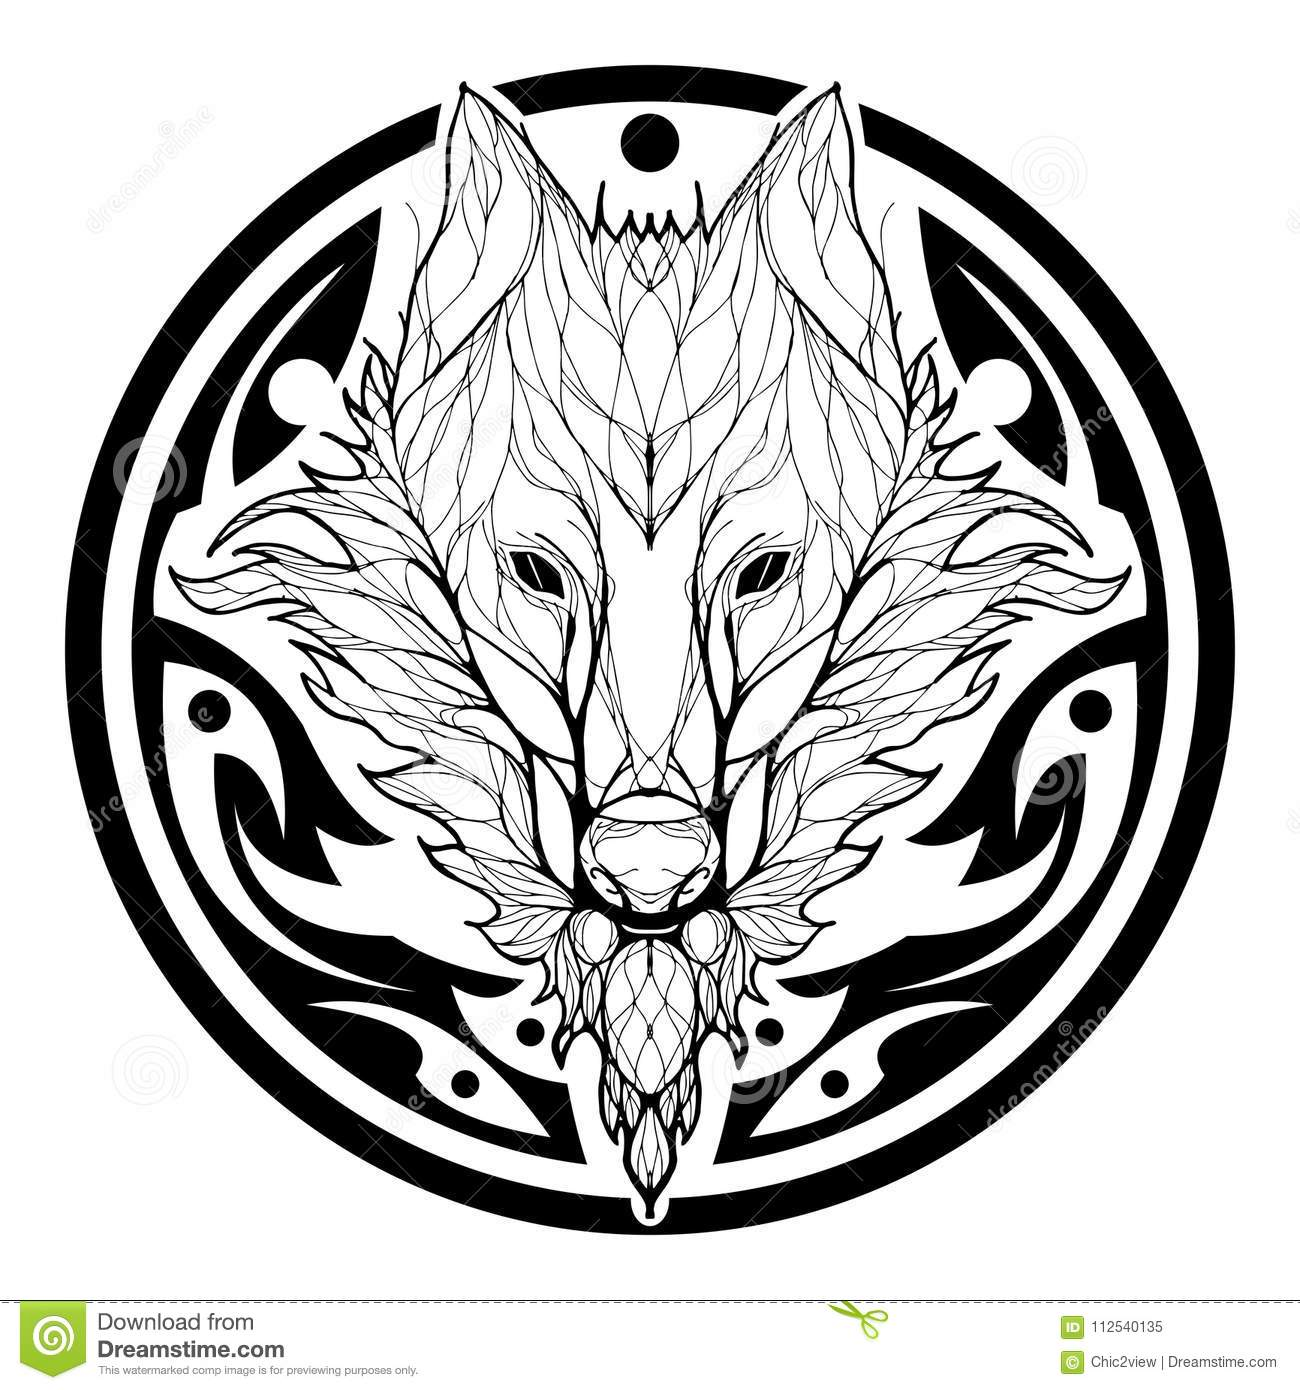 be3980f5e Wolf face double exposure with tree in Aztec tribal circle shape tattoo  black silhouette